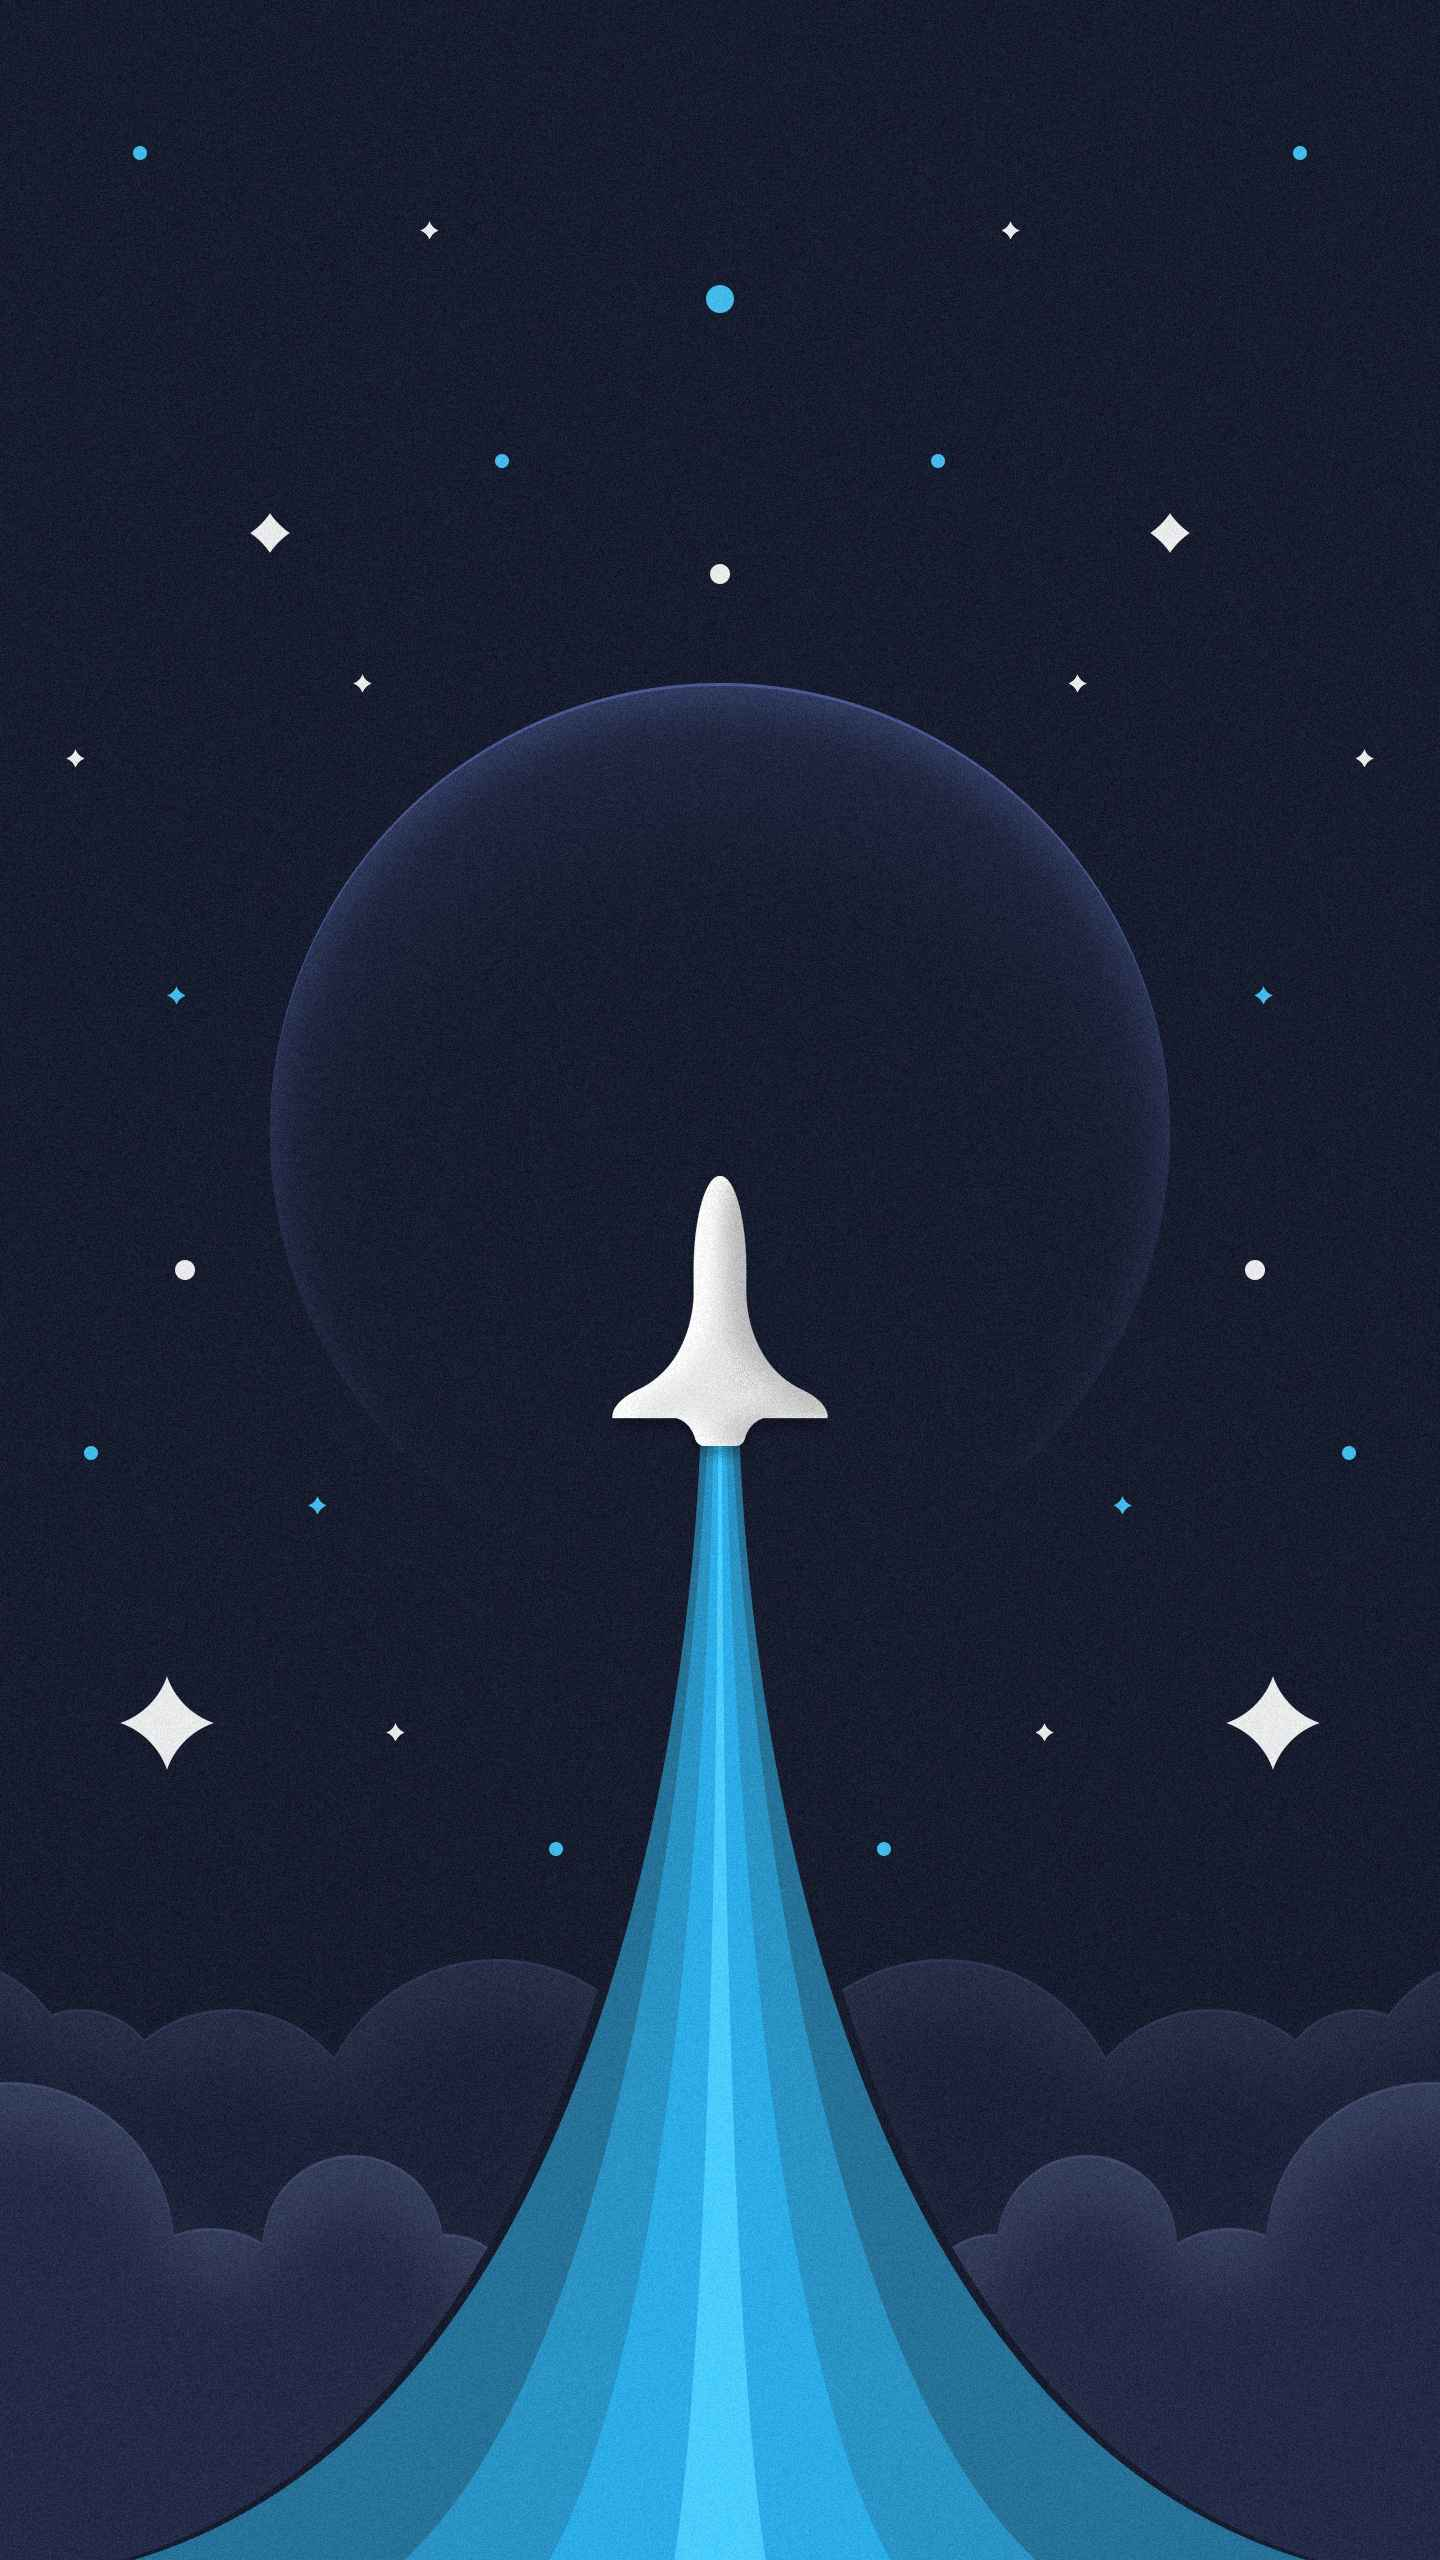 Space Expedition Amoled iPhone Wallpaper